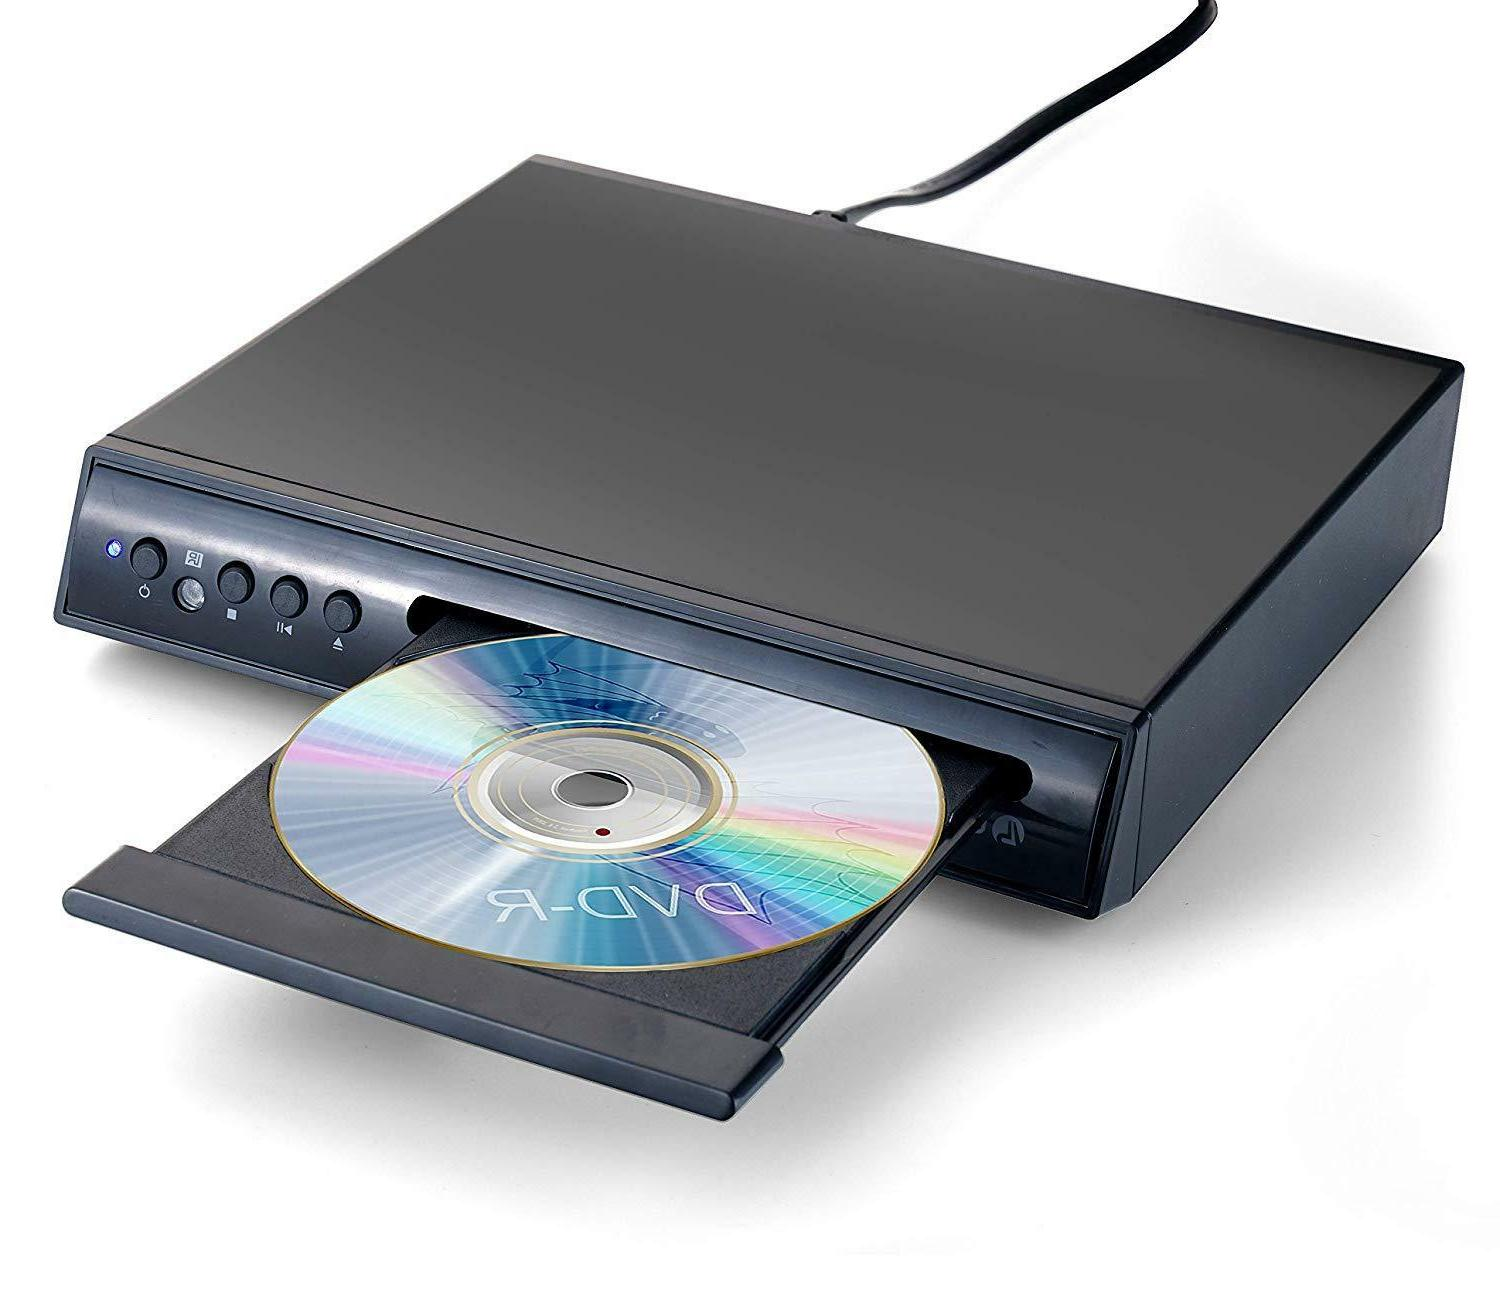 Borne DVD/JPEG/CD-R/CD-RW/CD TV with Remote, Front